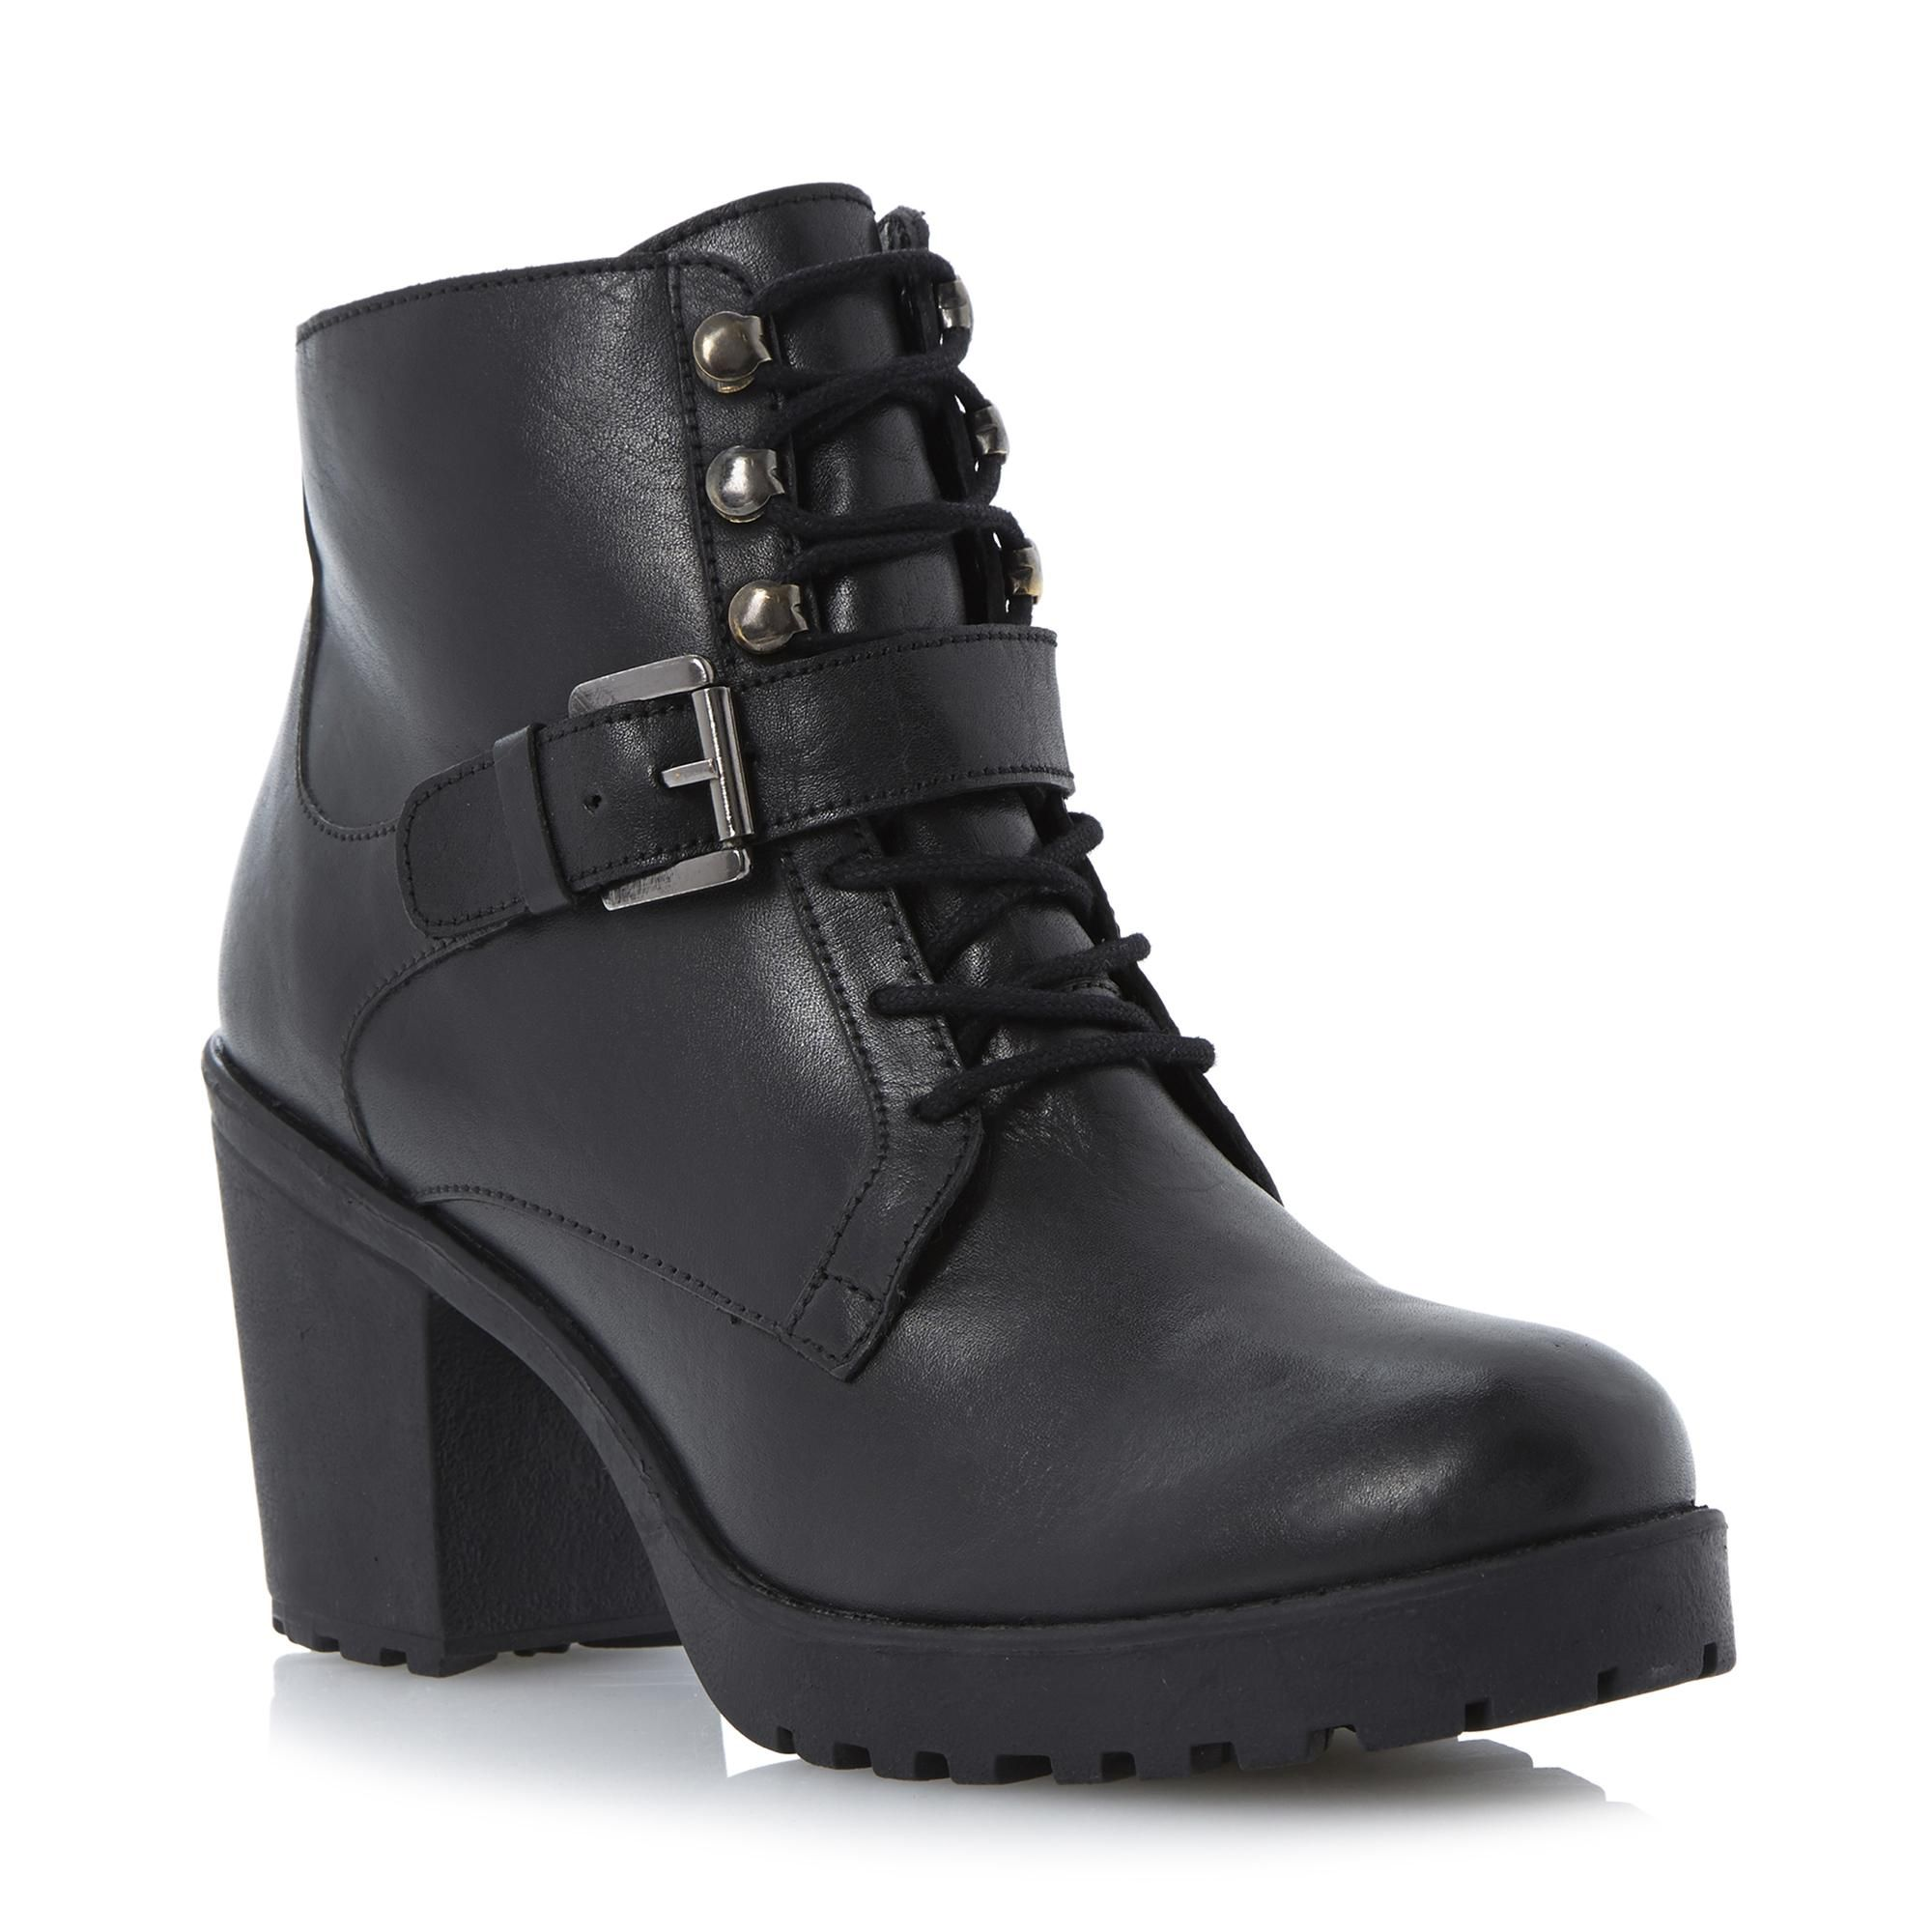 Cleated Sole Heeled Leather Ankle Boot